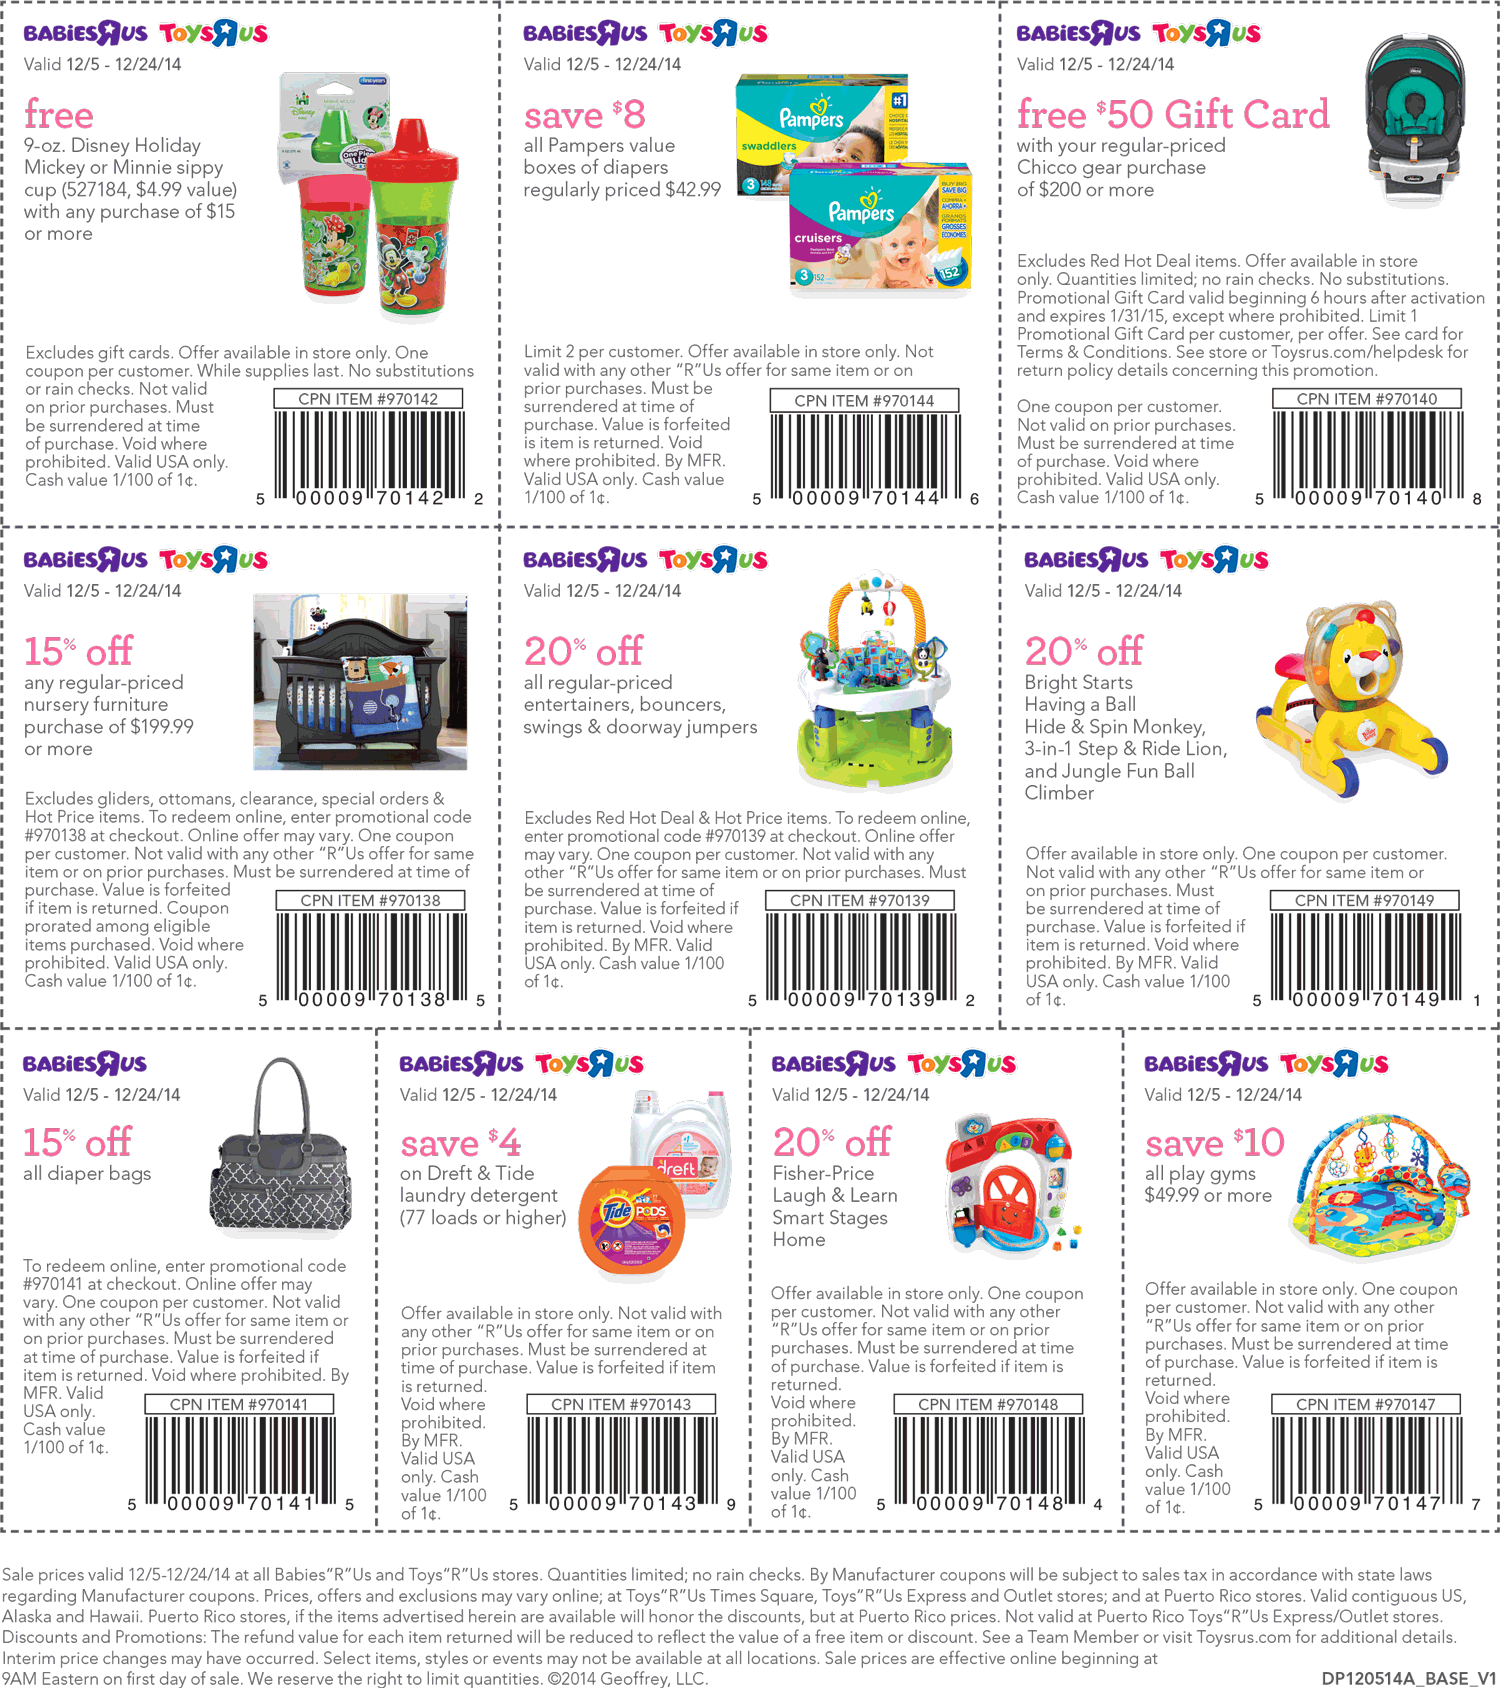 Toys R Us Coupon December 2017 $8 off large boxes of diapers & more at Toys R Us & Babies R Us